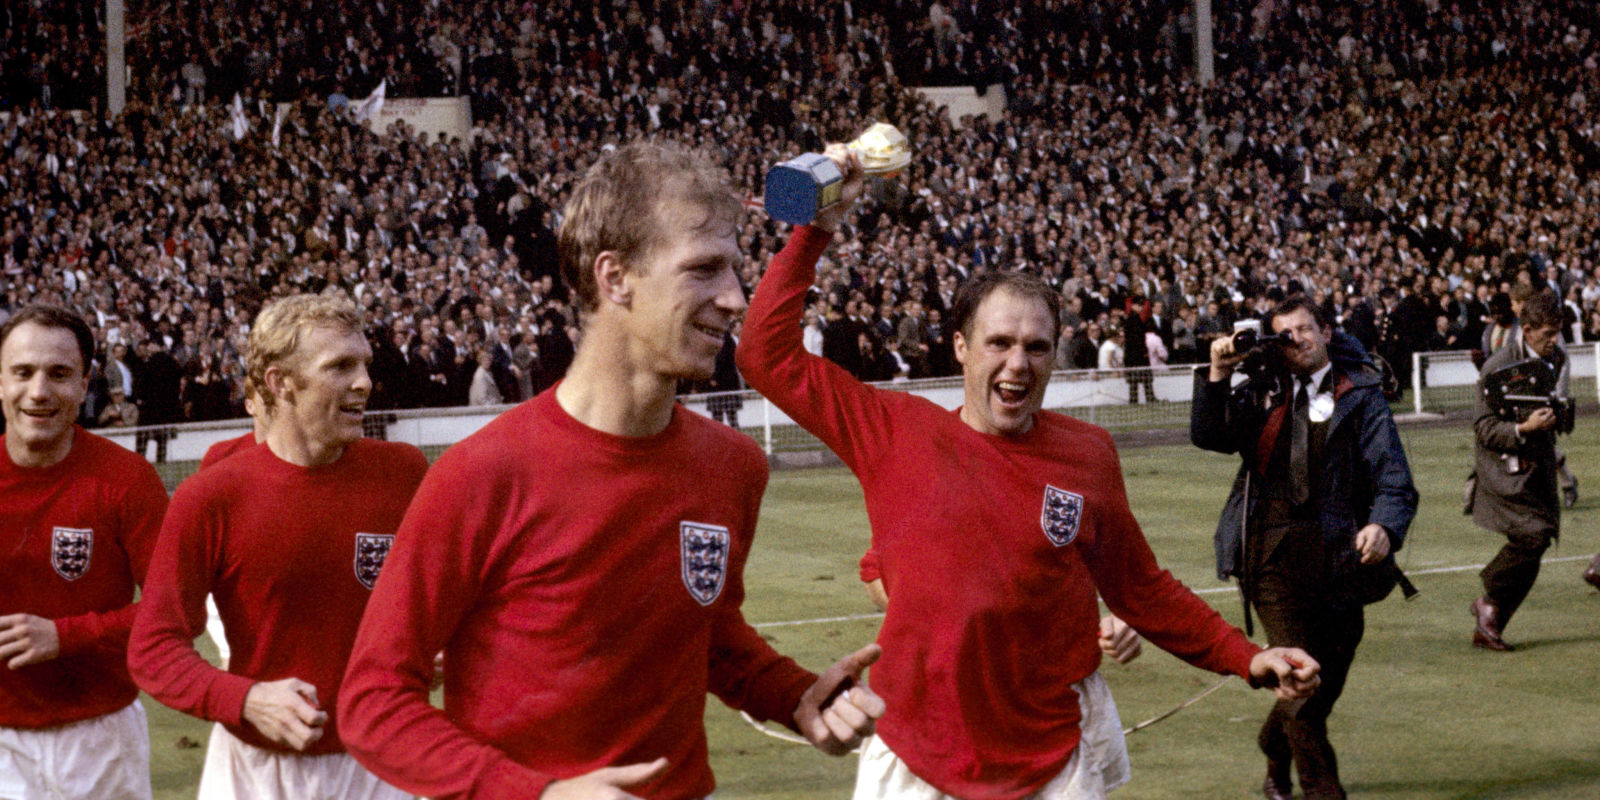 England's 1966 World Cup triumph to be recounted minute-by-minute on the 50th anniversary